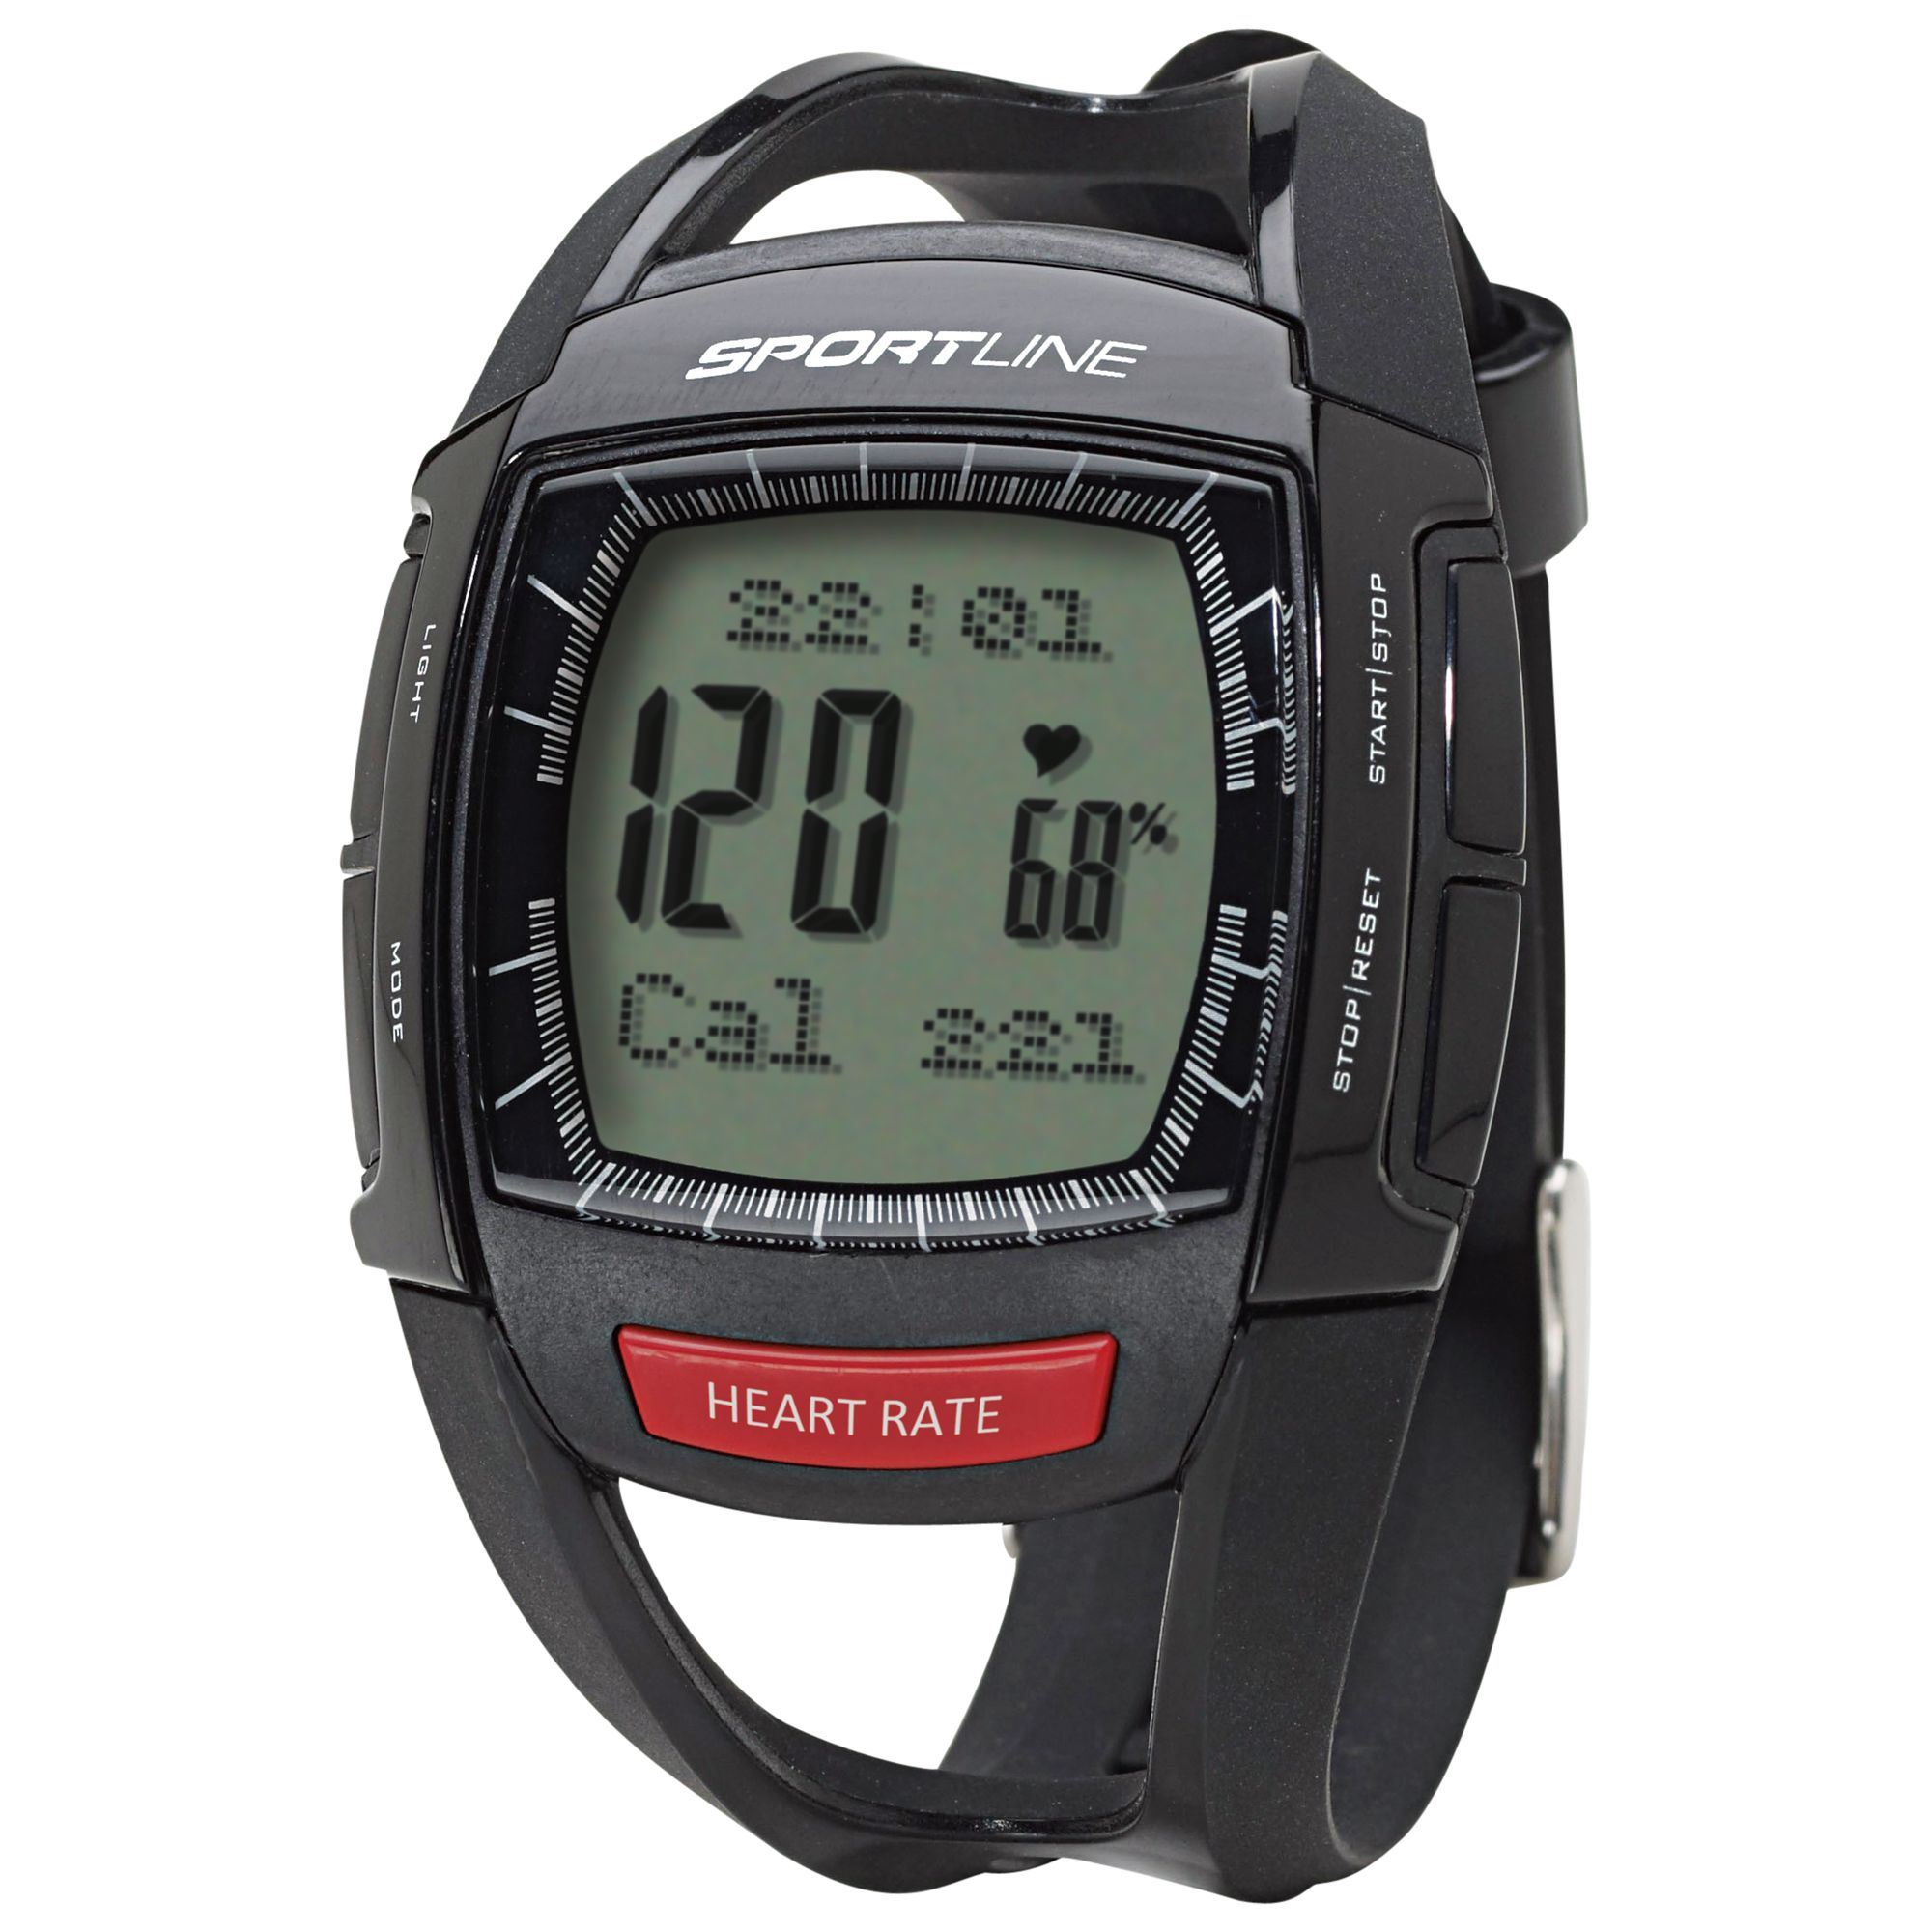 Sportline 660 Men's Cardio Heart Rate Watch, Black